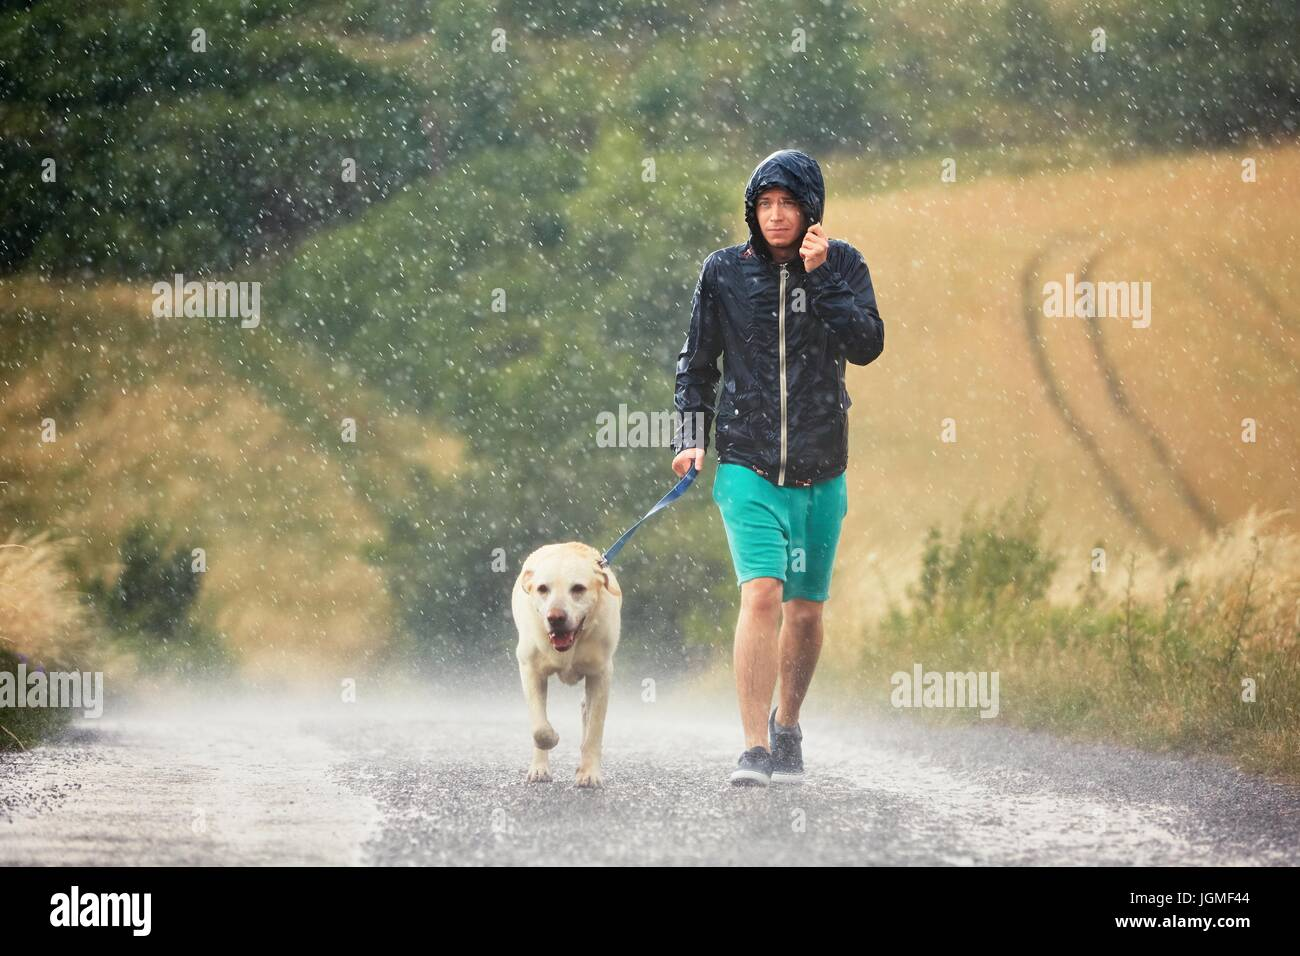 Young man walking with his dog (labrador retriever) in heavy rain on the rural road. - Stock Image